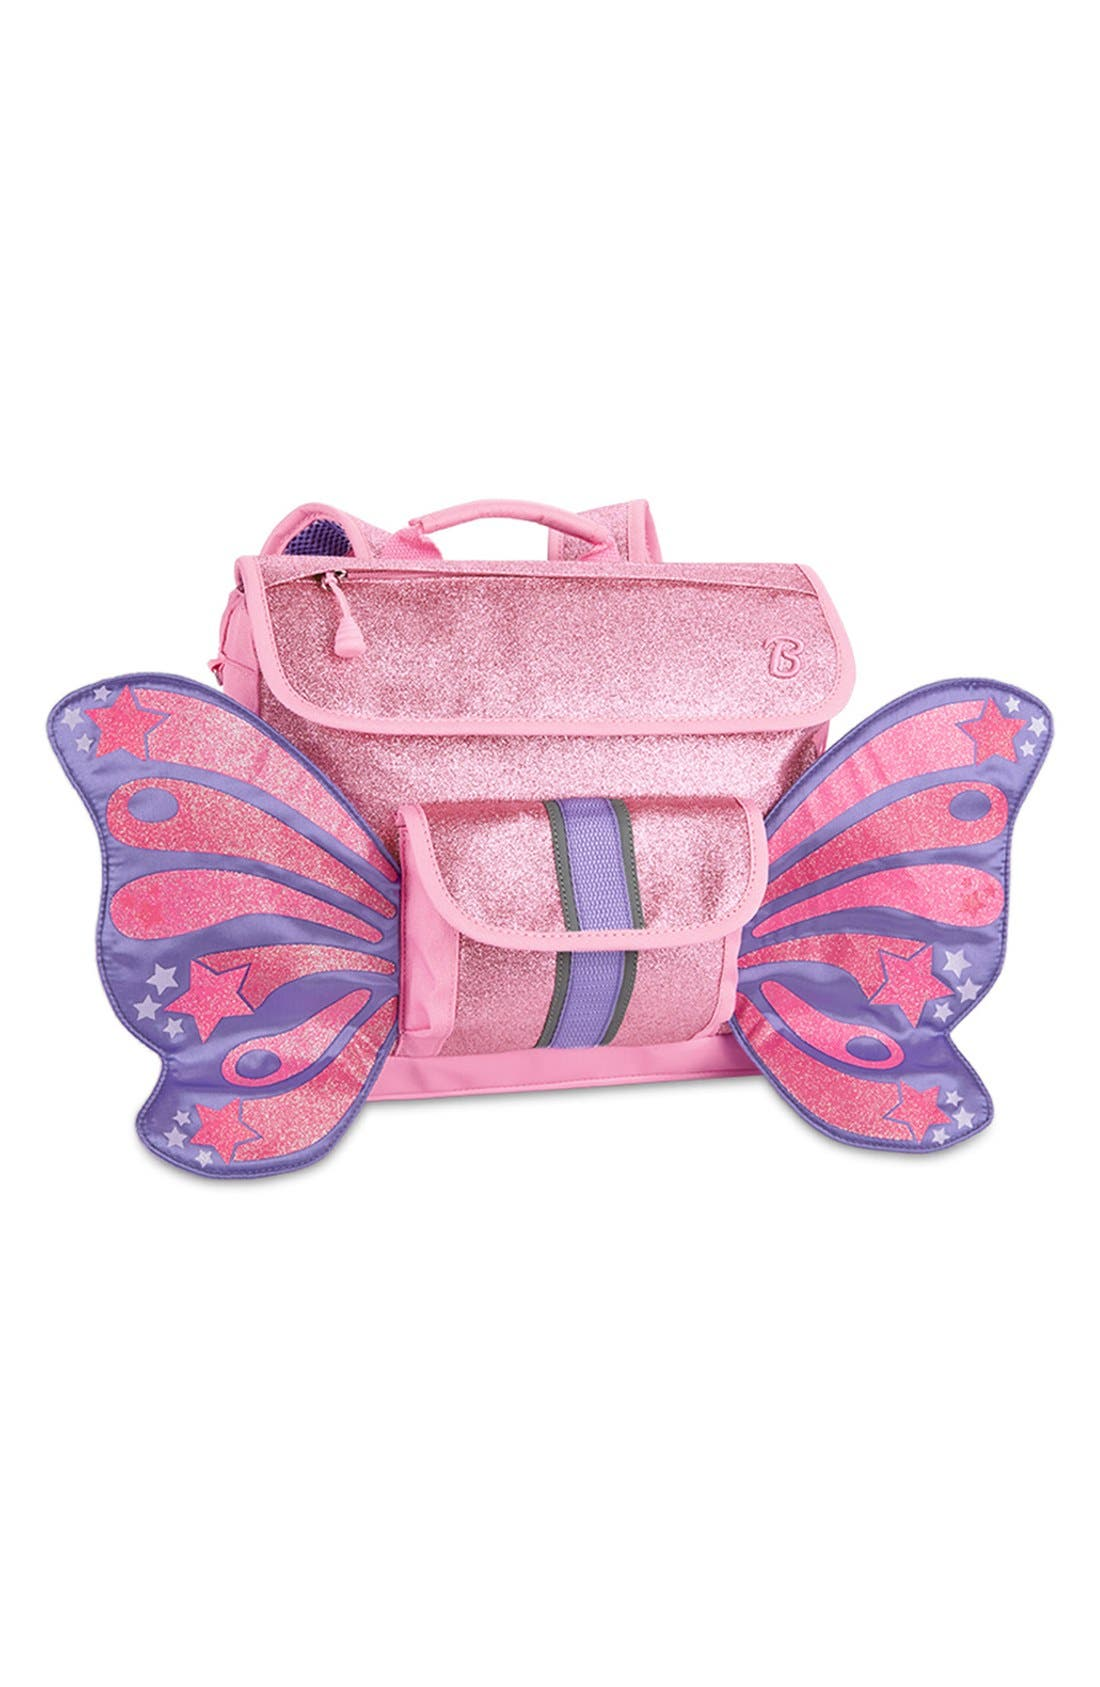 Main Image - Bixbee 'Small Sparkalicious Butterflyer' Backpack (Kids)